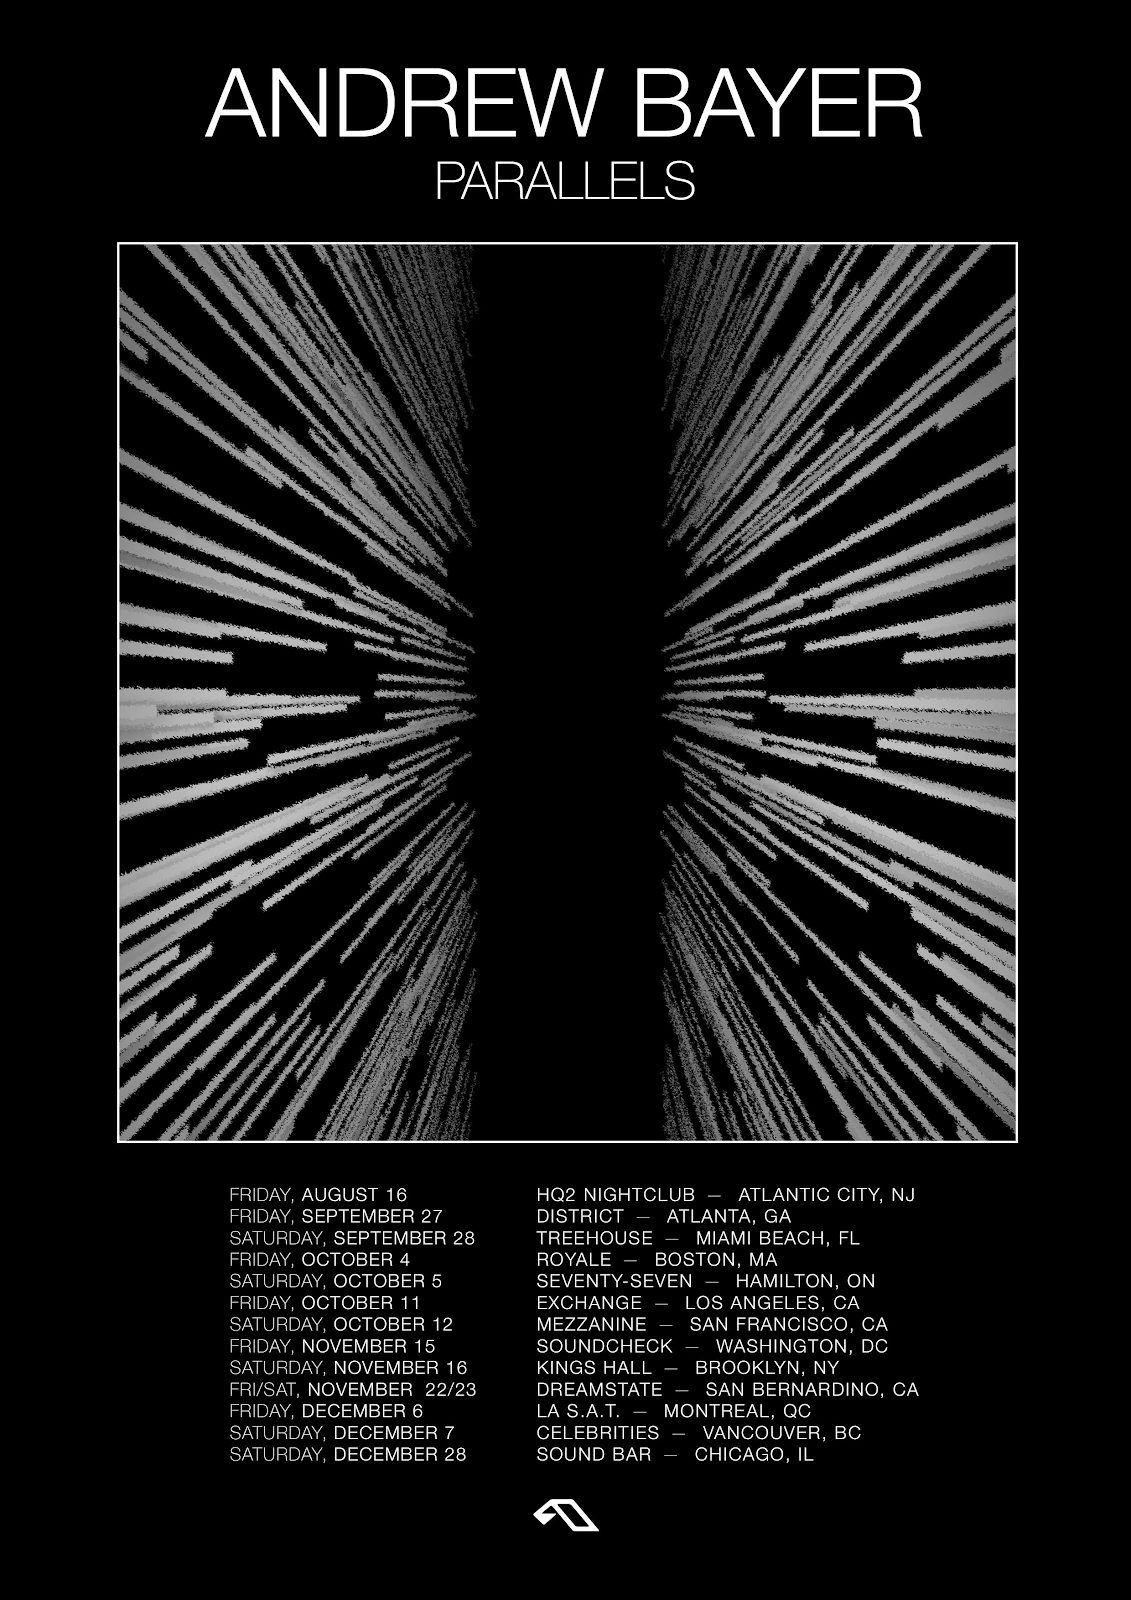 Andrew Bayer Parallels Tour